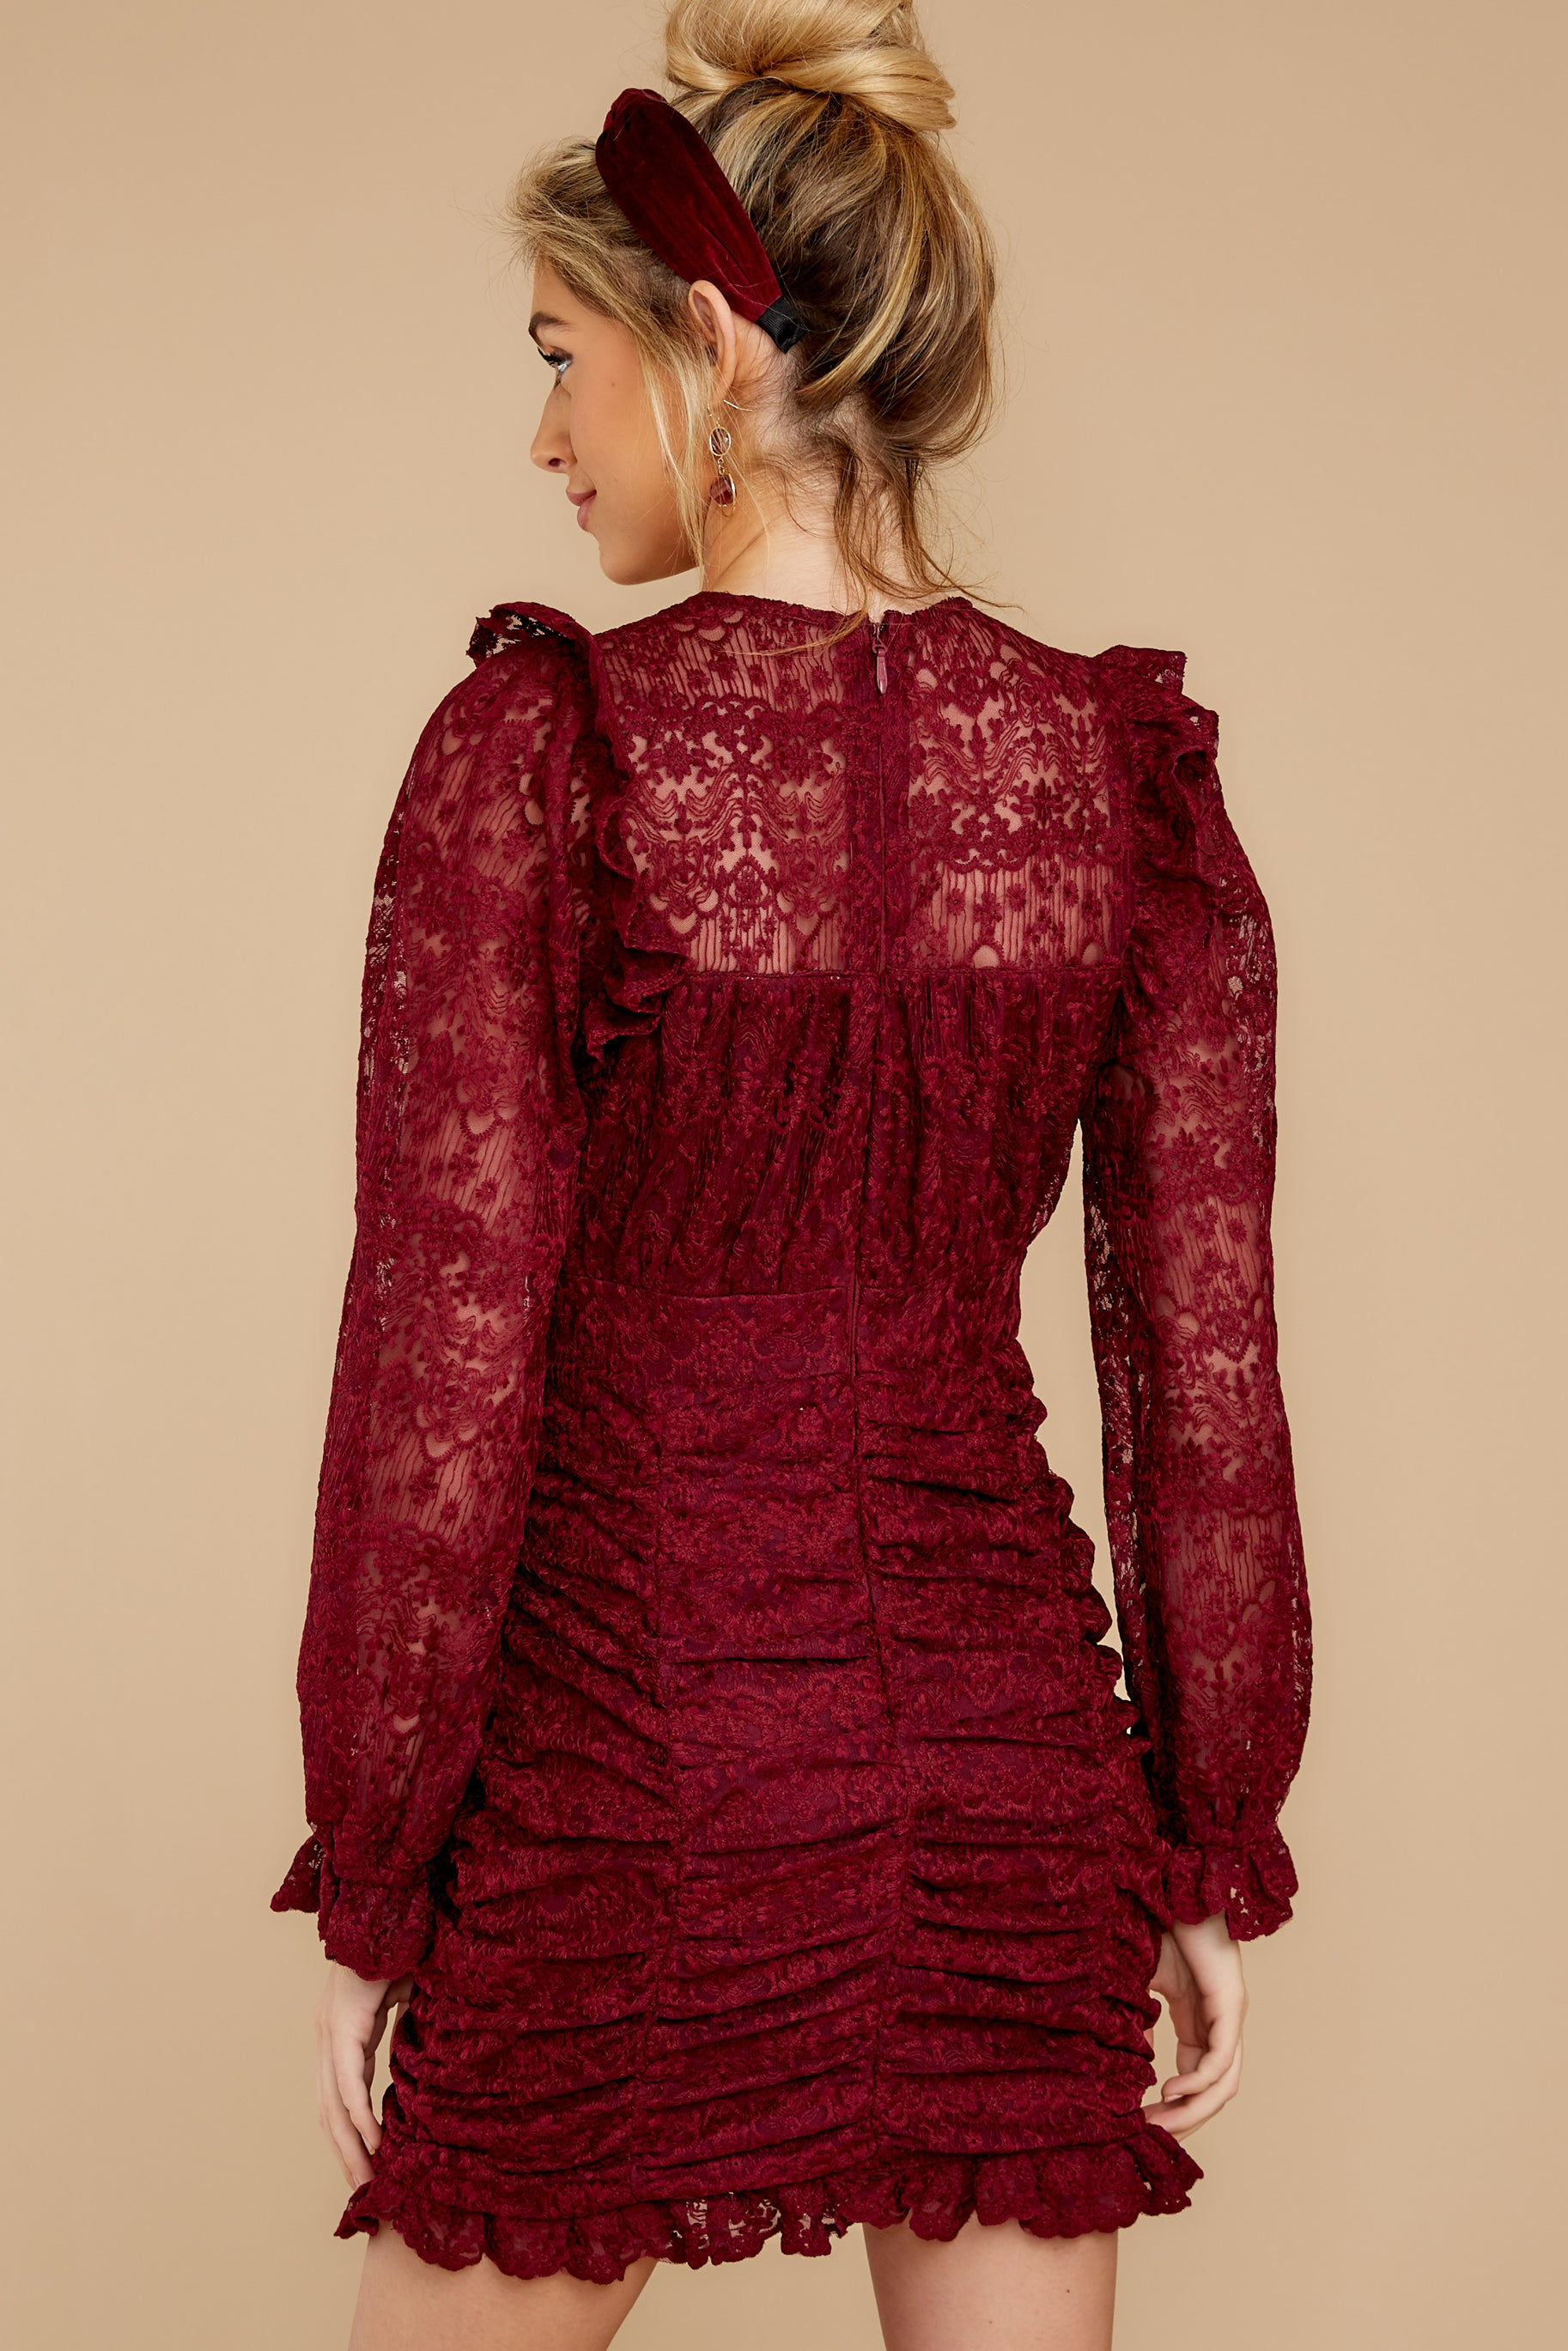 8 Talk About Love Burgundy Dress at reddress.com